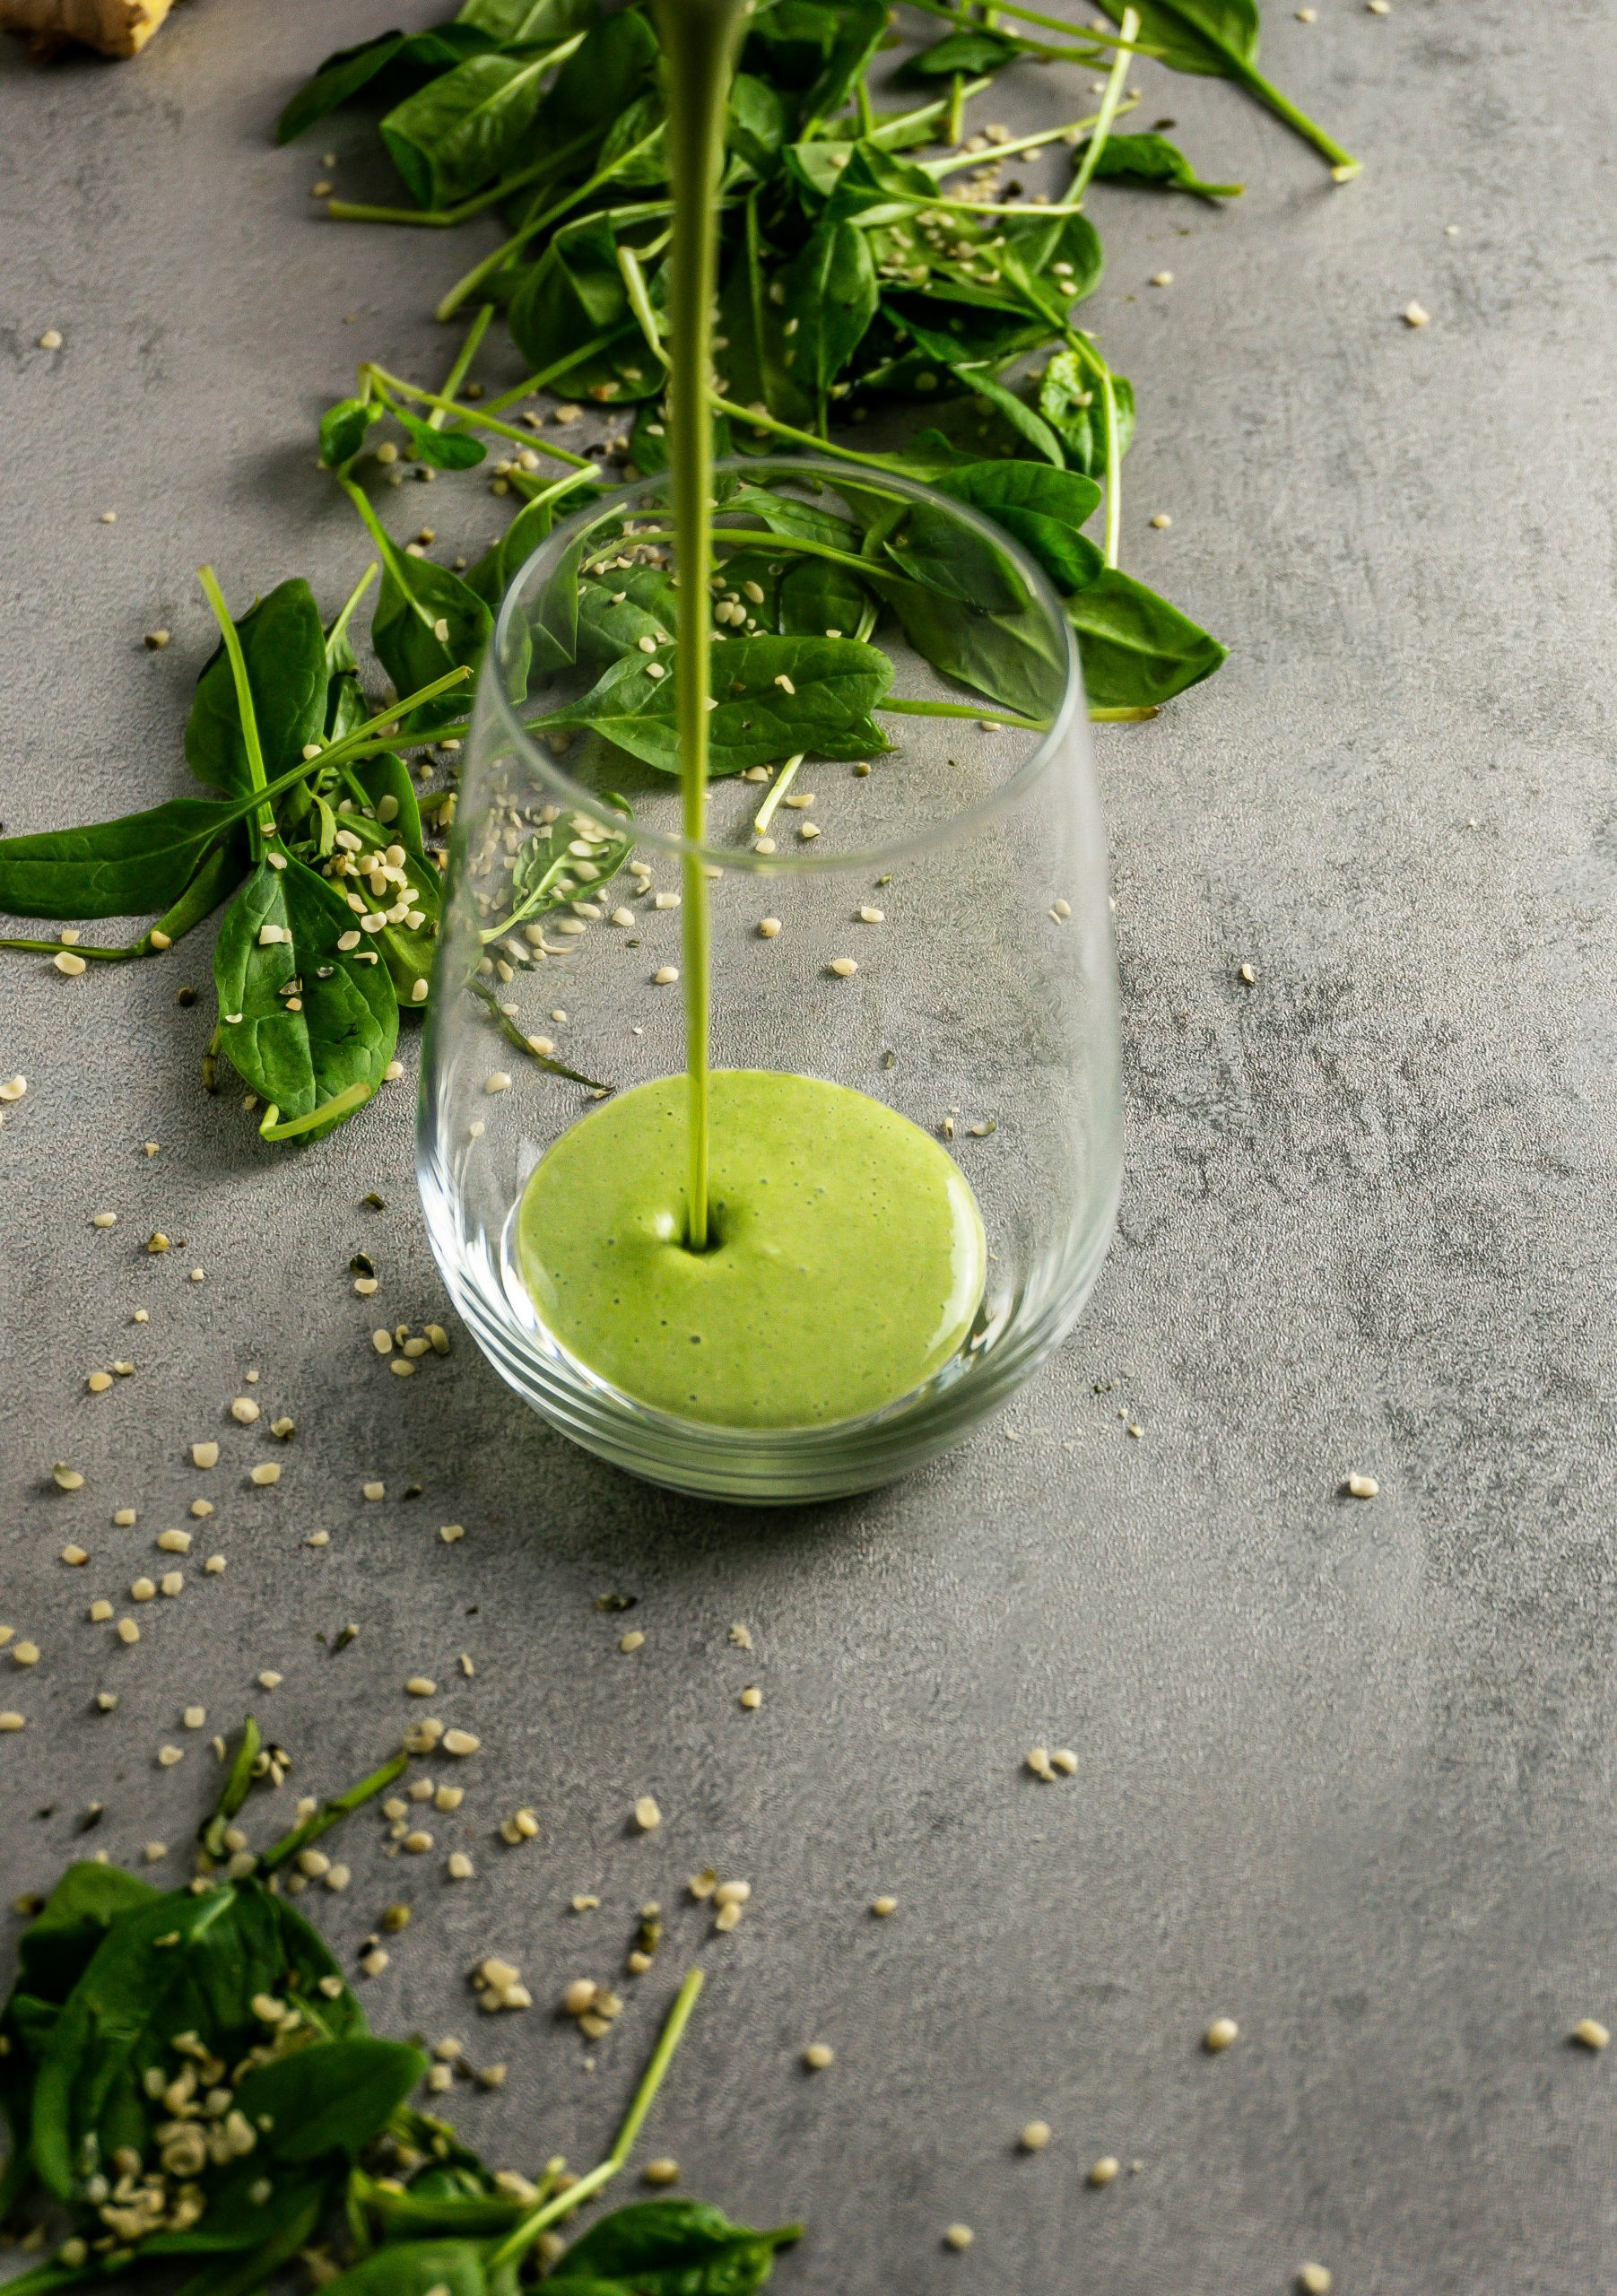 Green Monster Smoothie being poured into a glass. The glass is placed on a grey background with spinach and hemp seeds scattered around